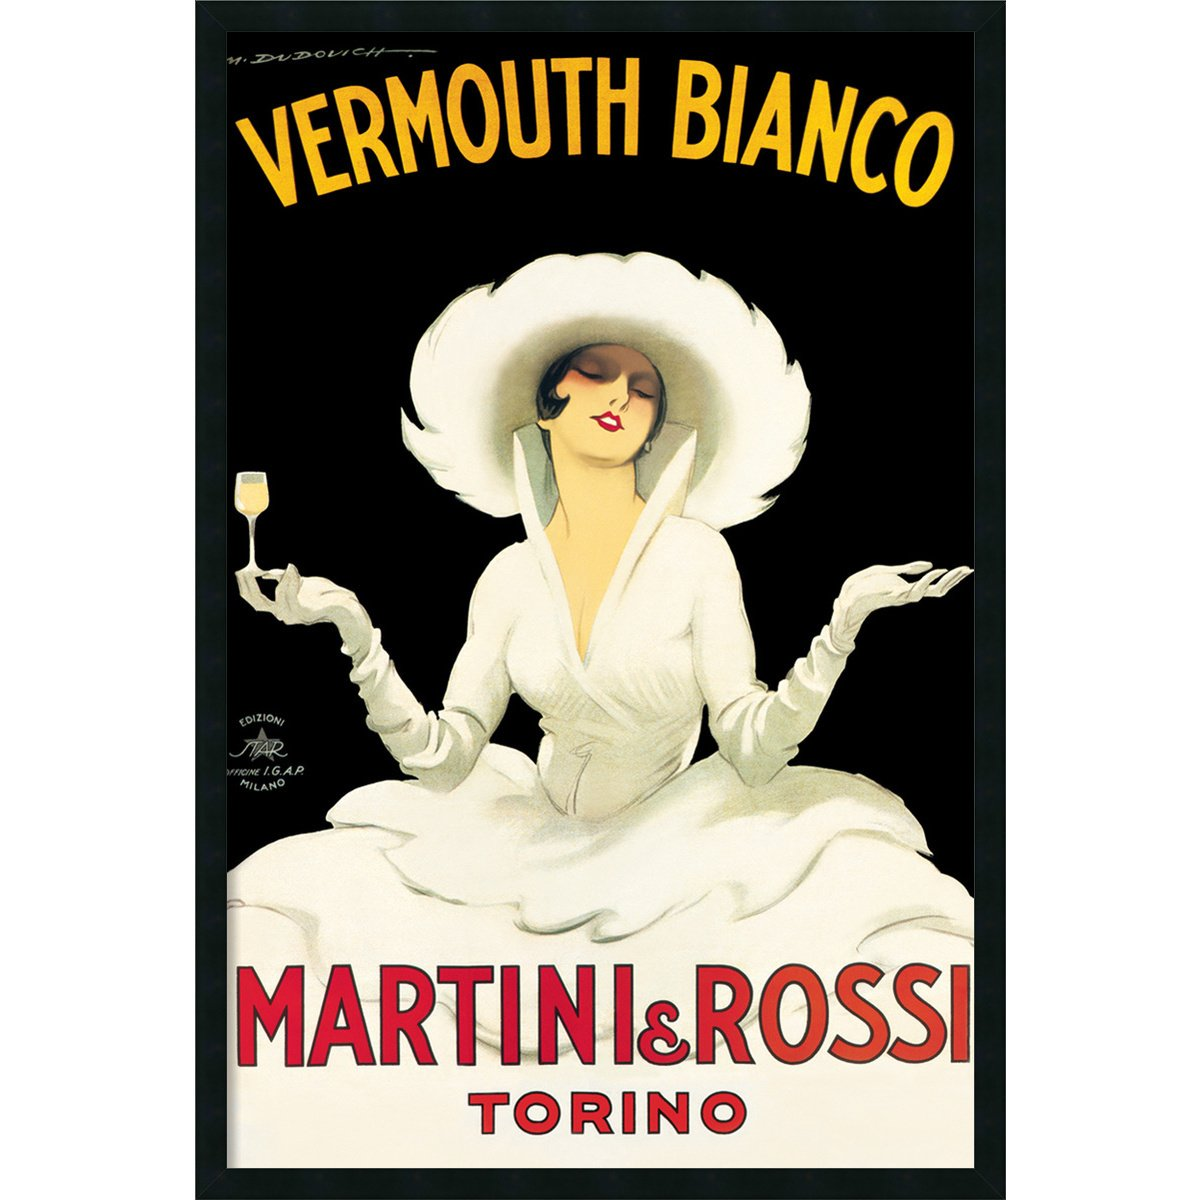 Martini & Rossi Framed壁アートby Marcello Dudovich – 25.41 W x 37.41h in。 25